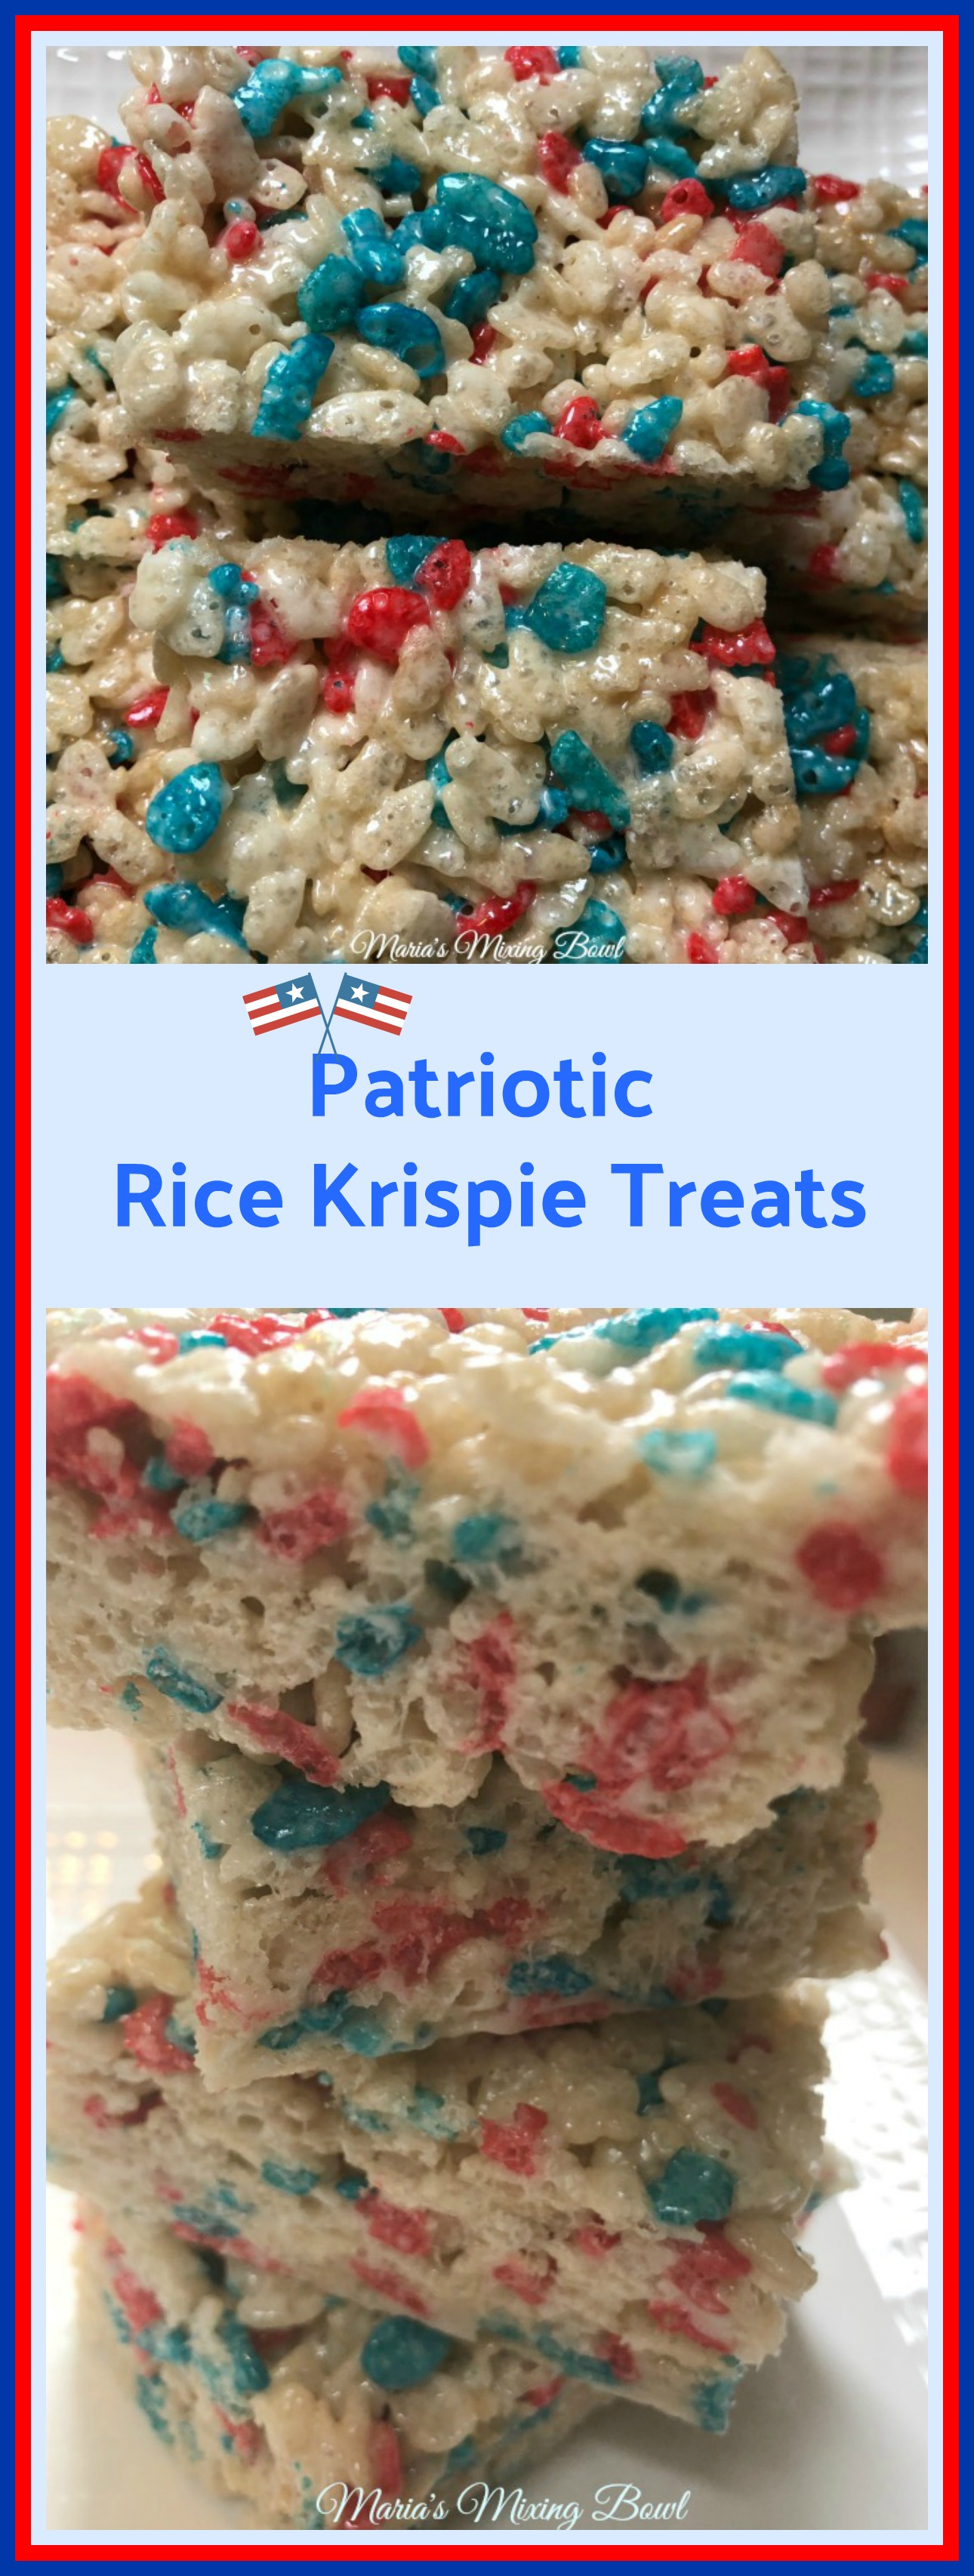 Patriotic Rice Krispy Treats Recipe - Serve up this ooey gooey treat at your Memorial day or July 4th BBQ and everyone will have a smile on their face!